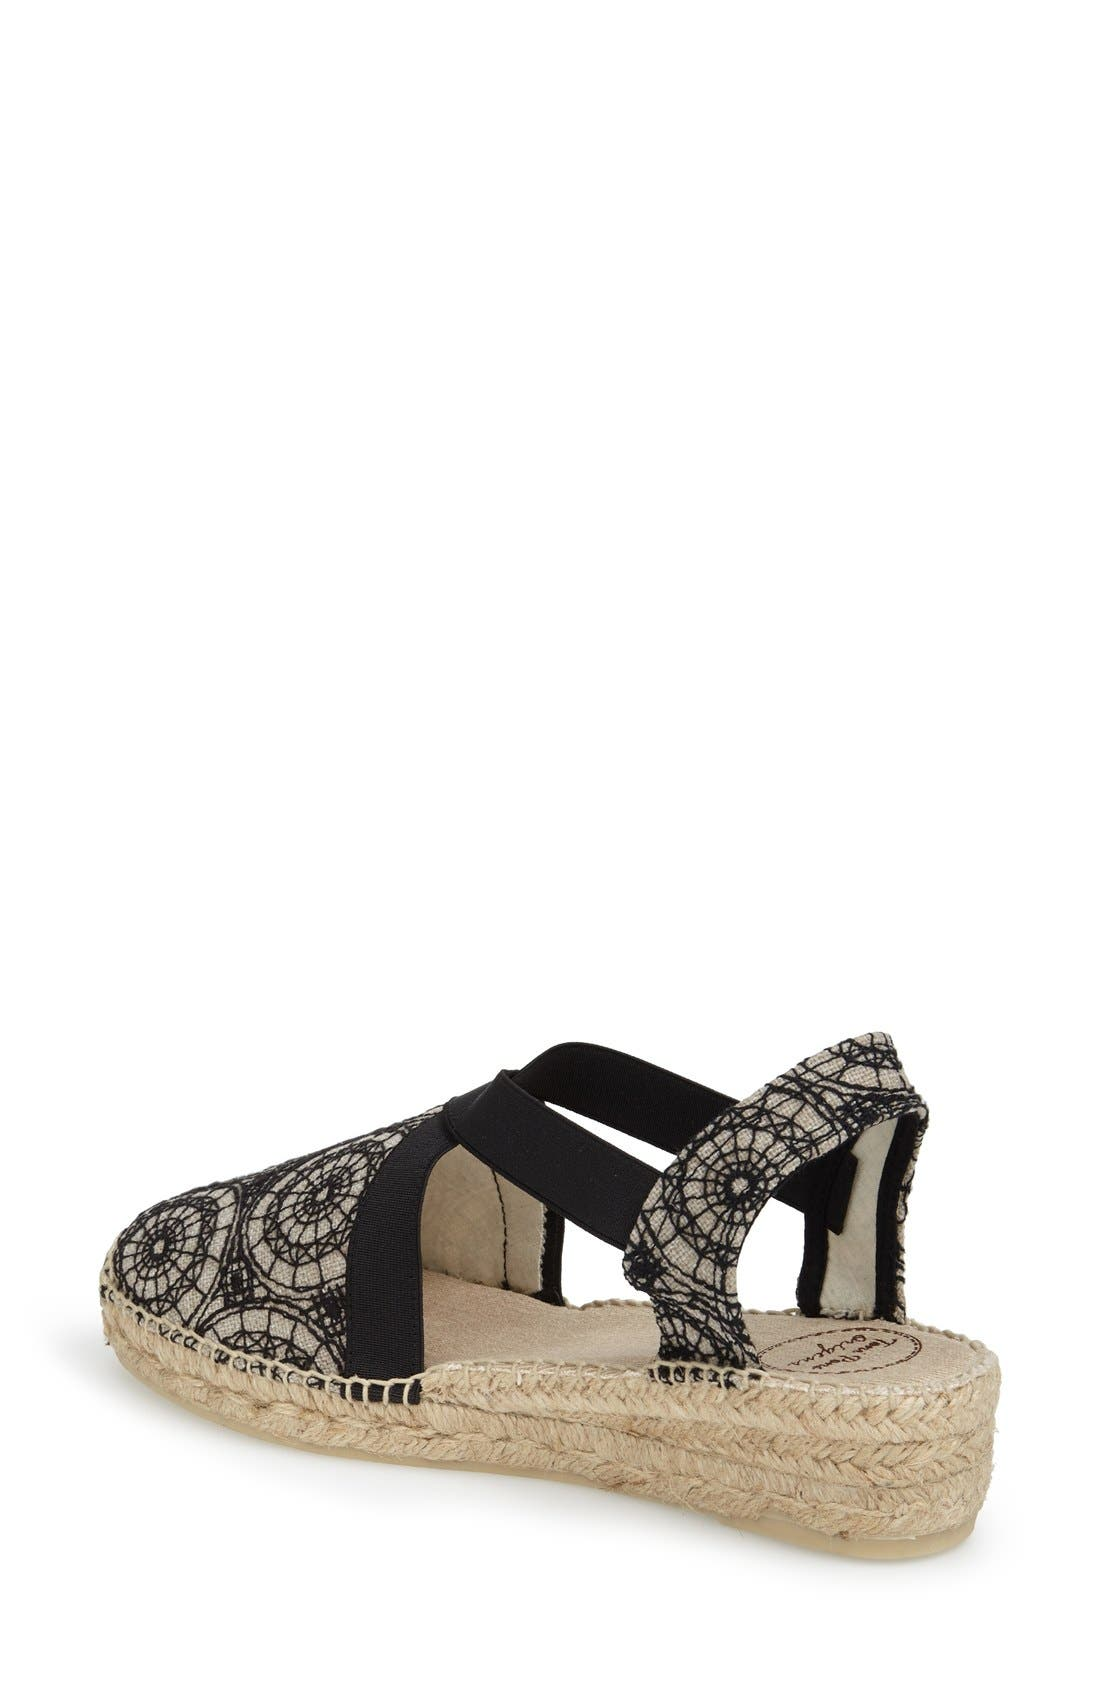 'Vera' Slingback Espadrille Sandal,                             Alternate thumbnail 4, color,                             001